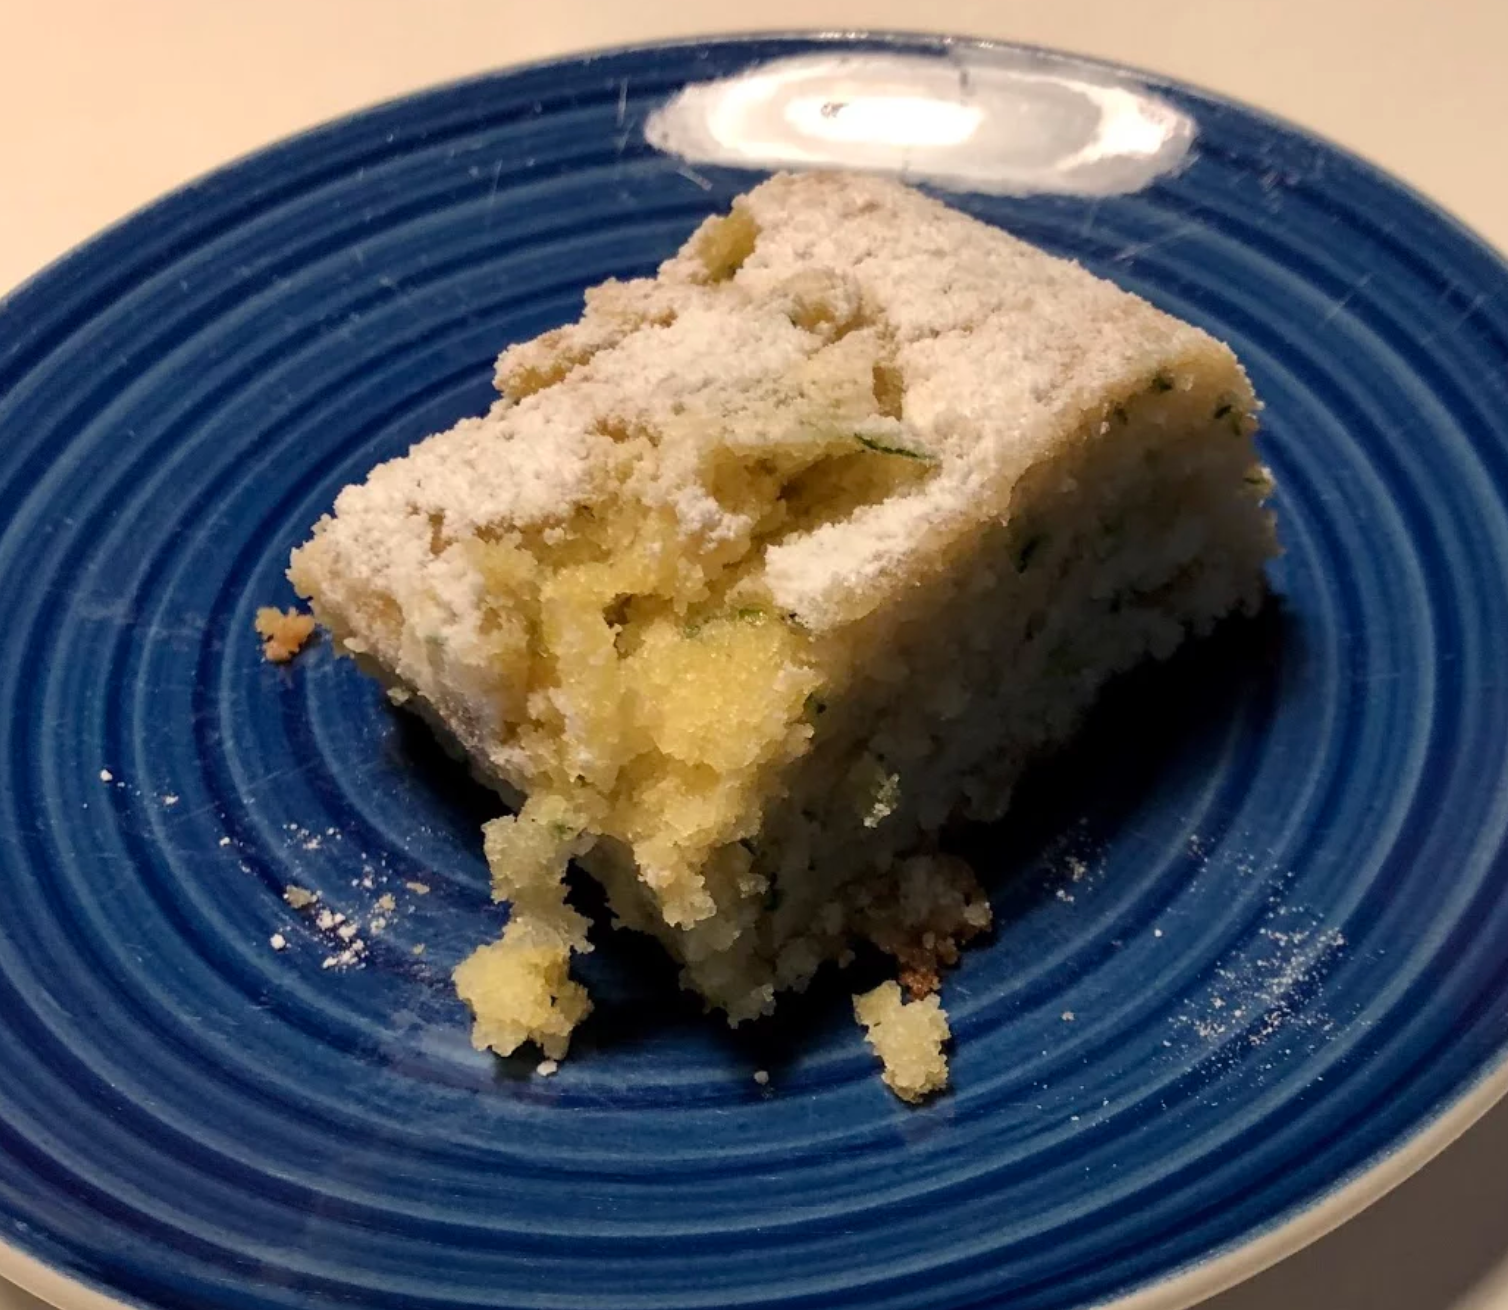 Put your excess zucchini to good use with this moist citrus-packed sheet cake. The easy four-ingredient frosting — made with cream cheese, butter, lemon extract, and powdered sugar — brings the whole thing together.